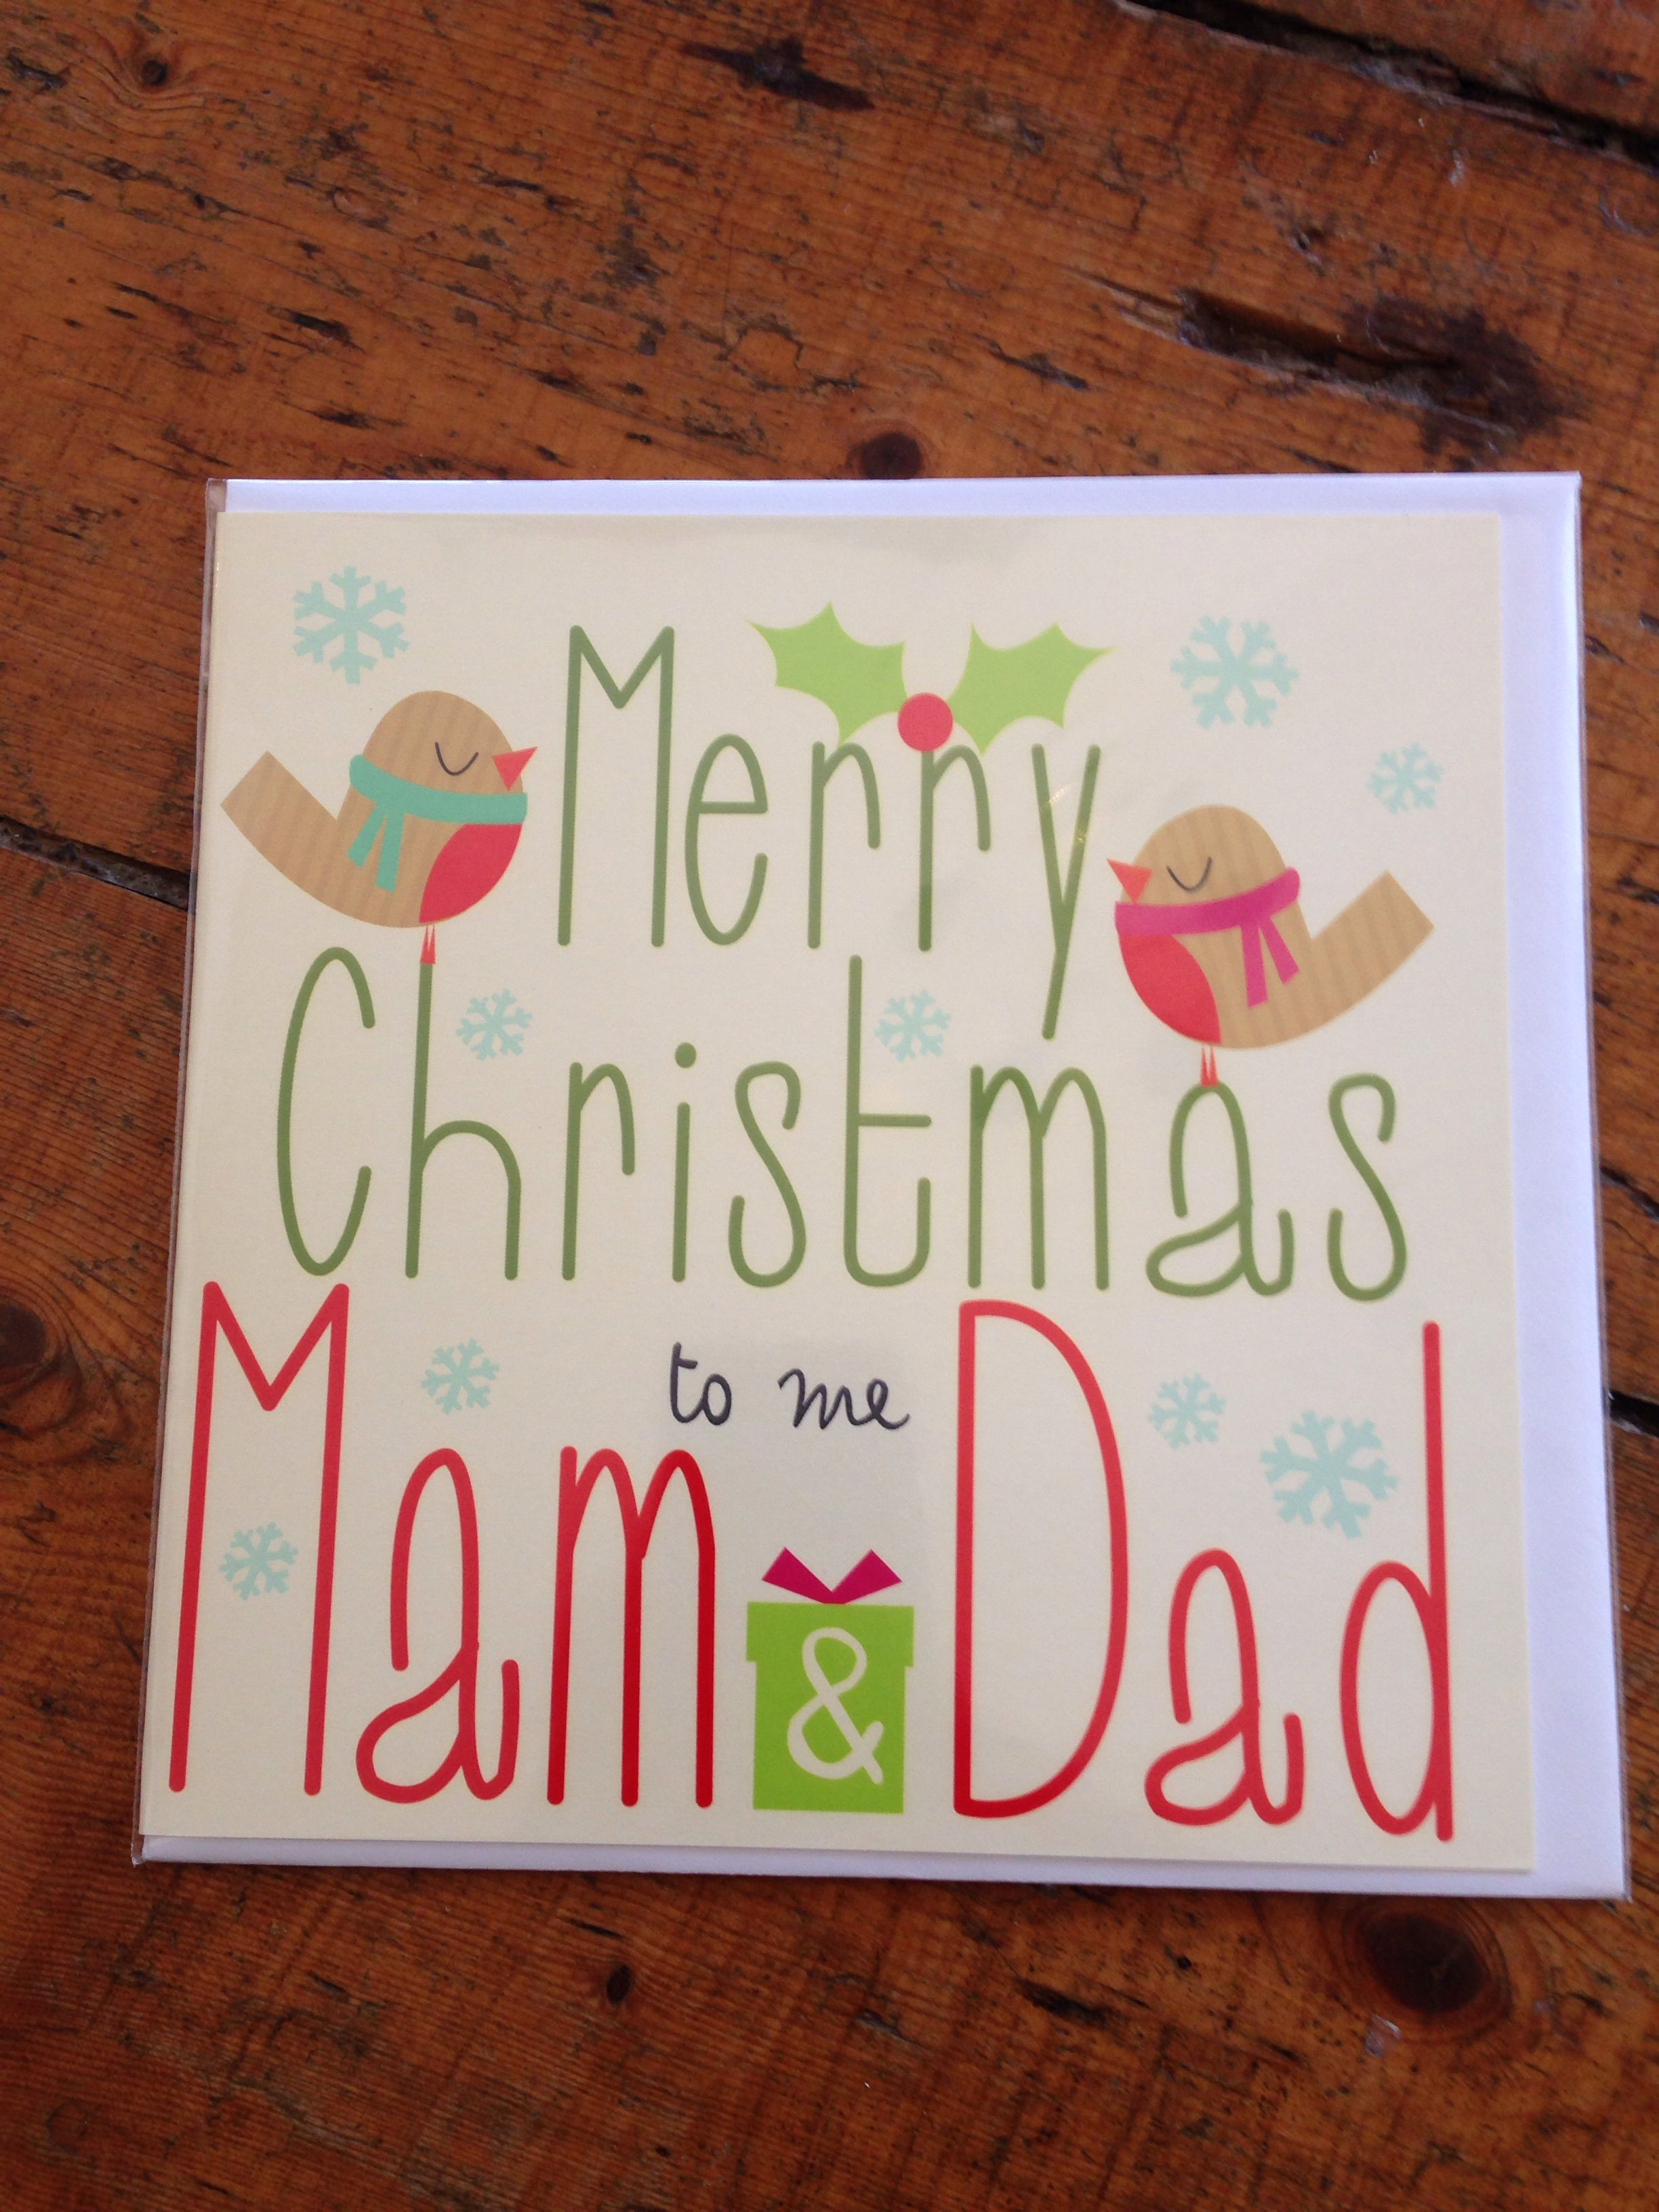 Lush geordie christmas card for your parents. | Geordie cards ...